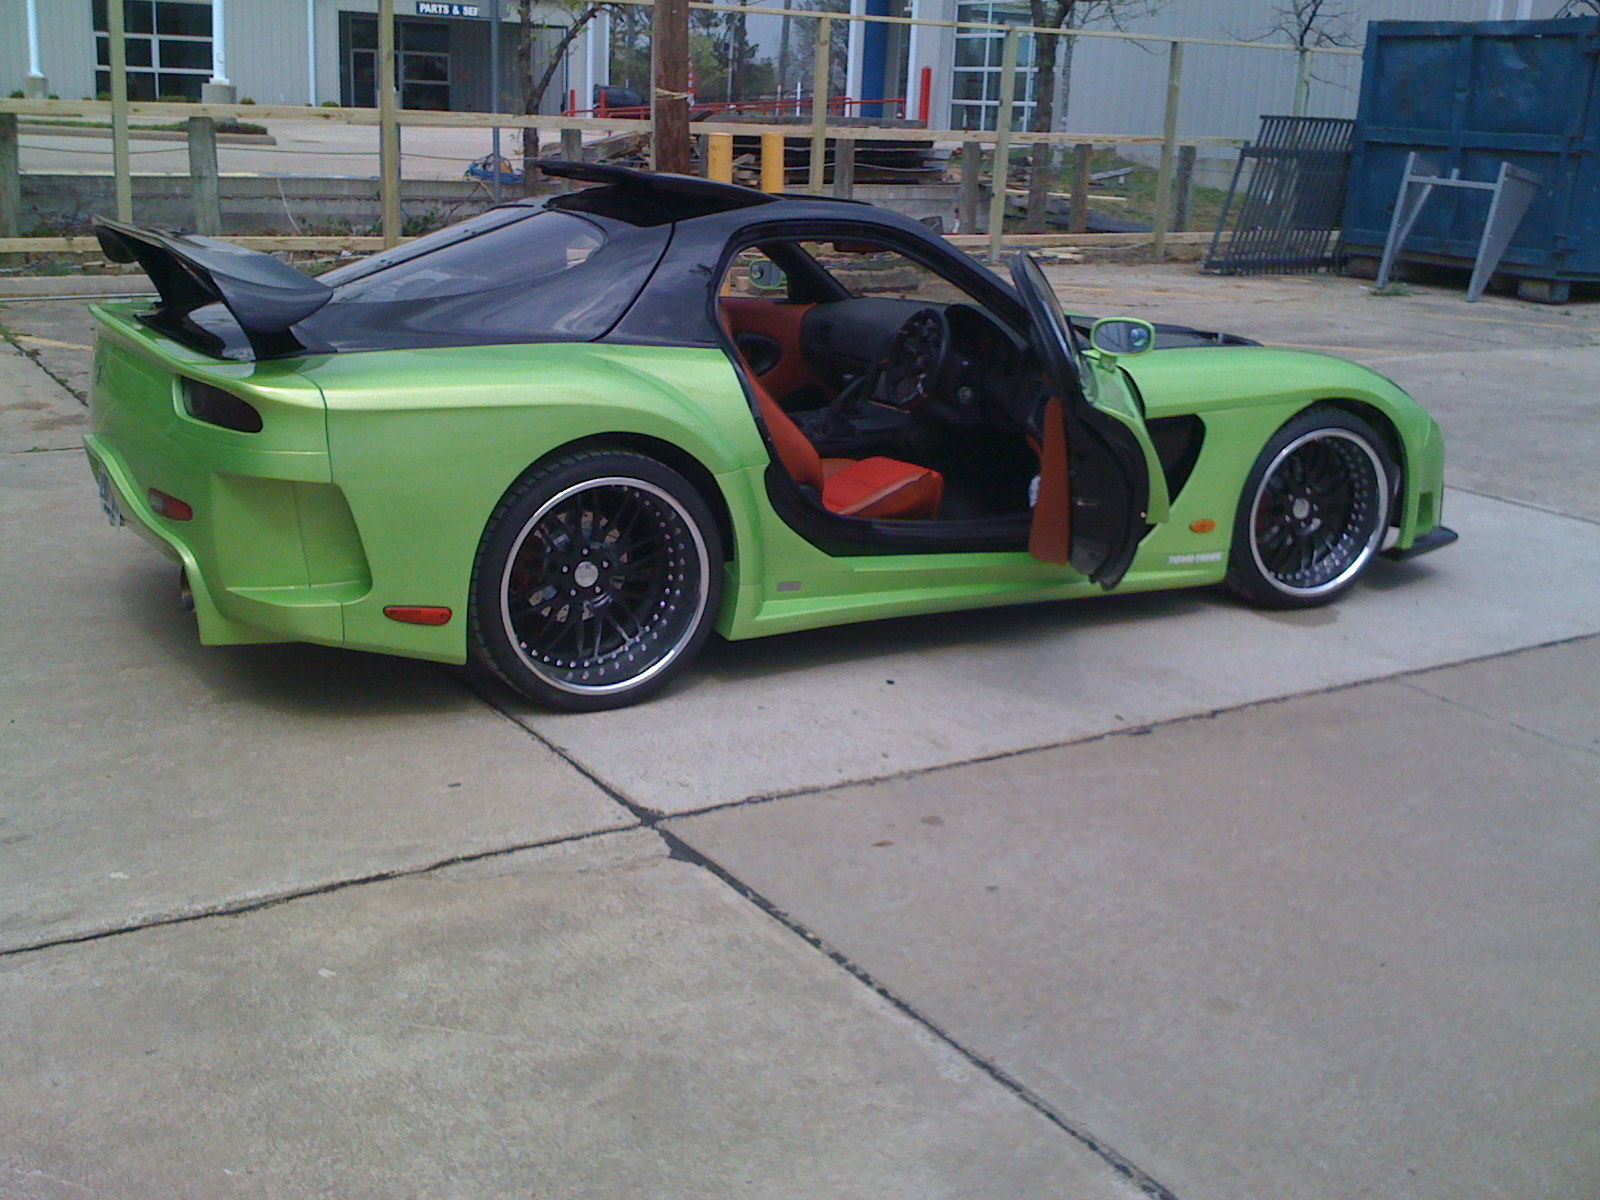 Wonderful Limeveilside 1993 Mazda RX 7